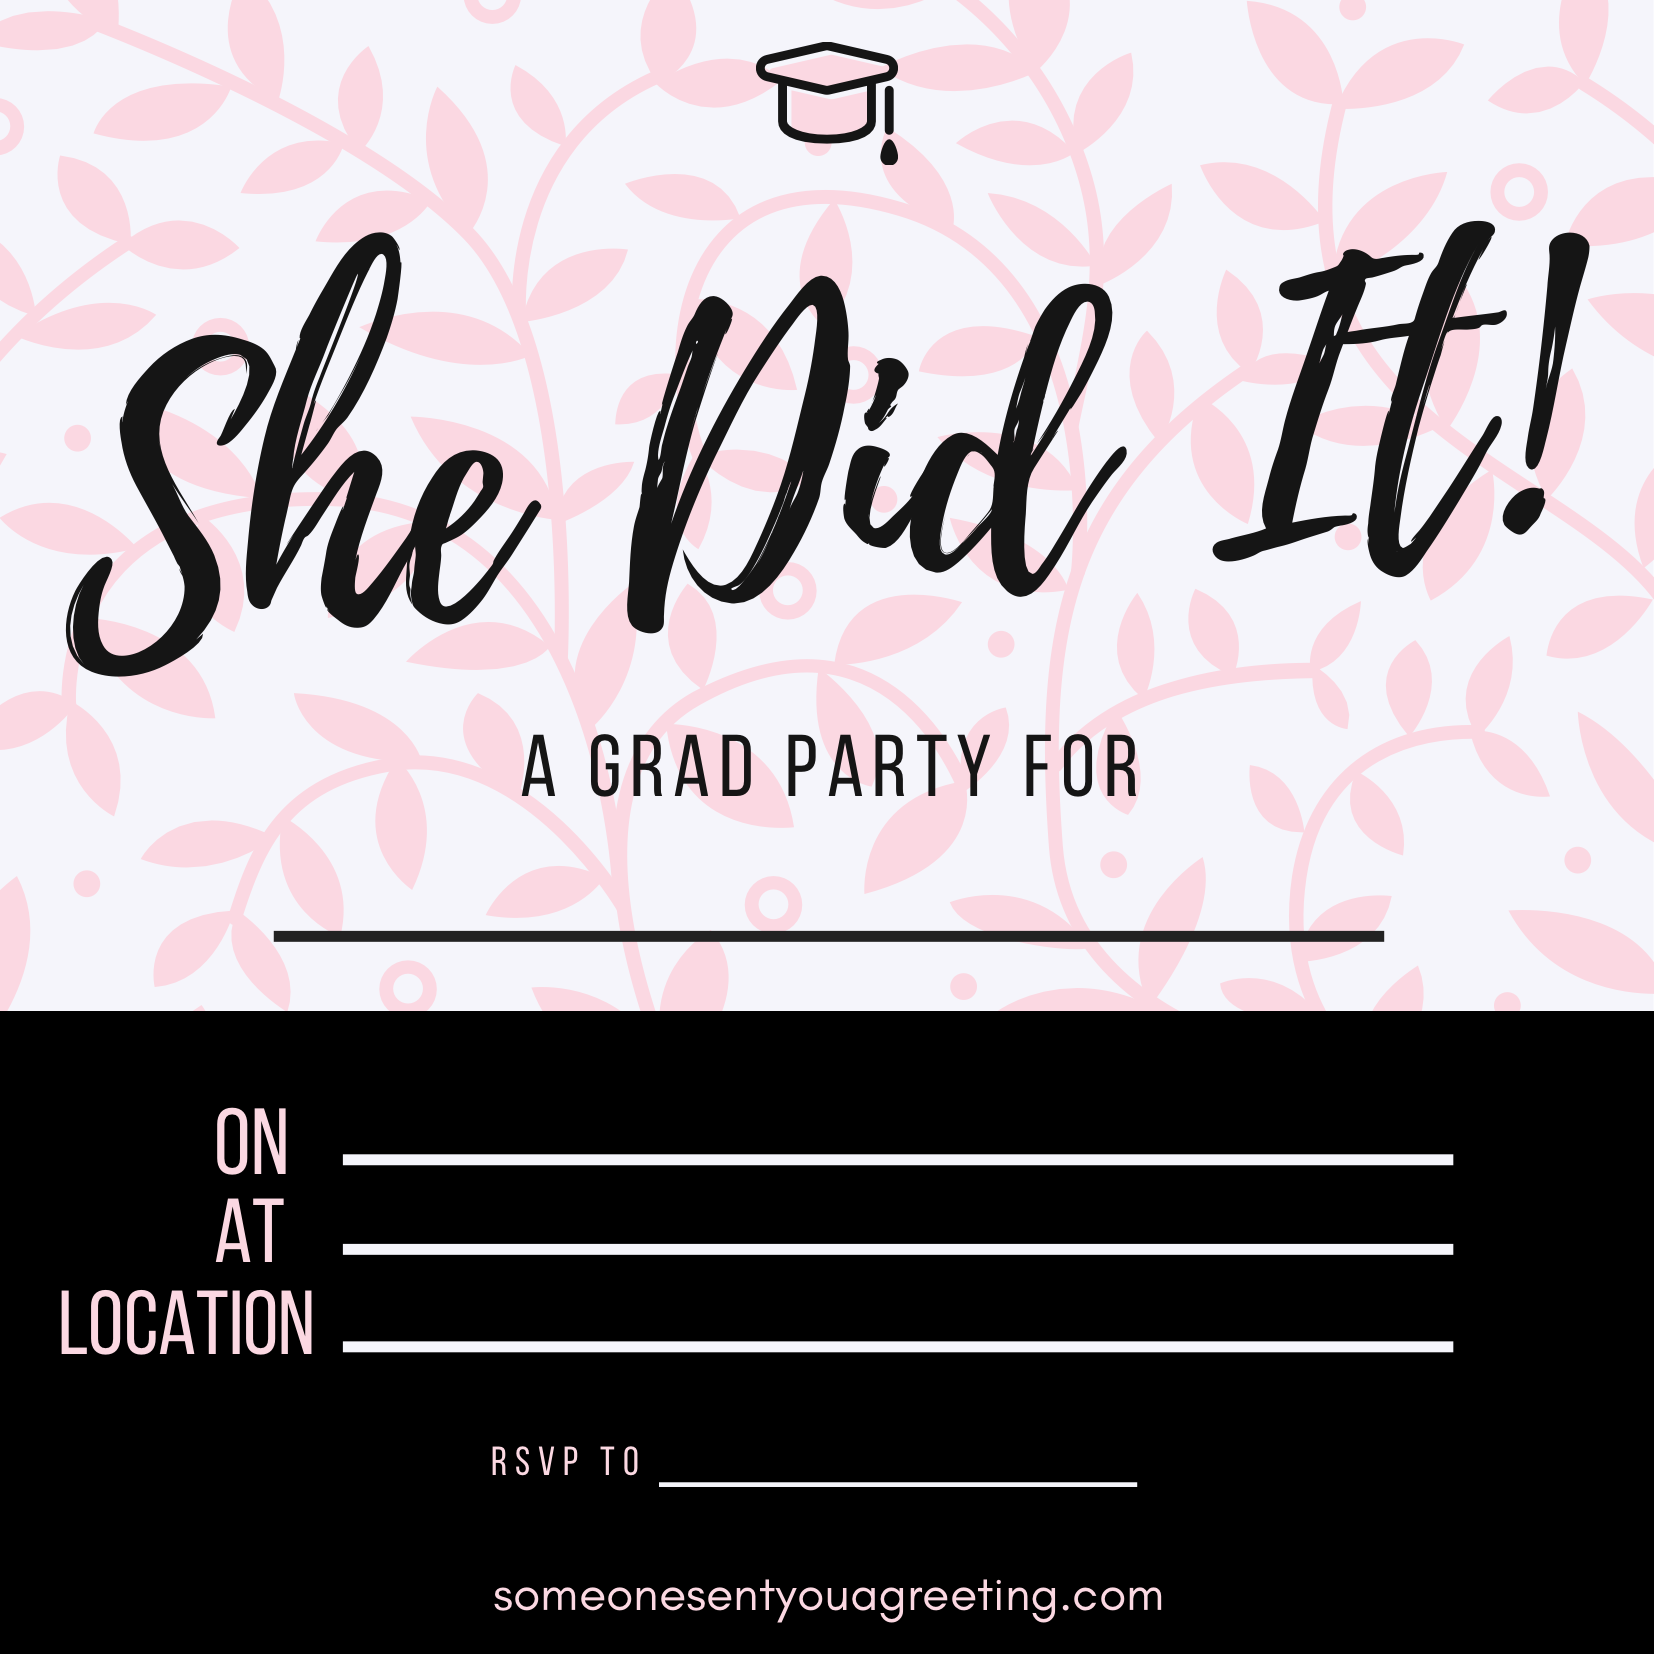 She did it graduation party invitation template